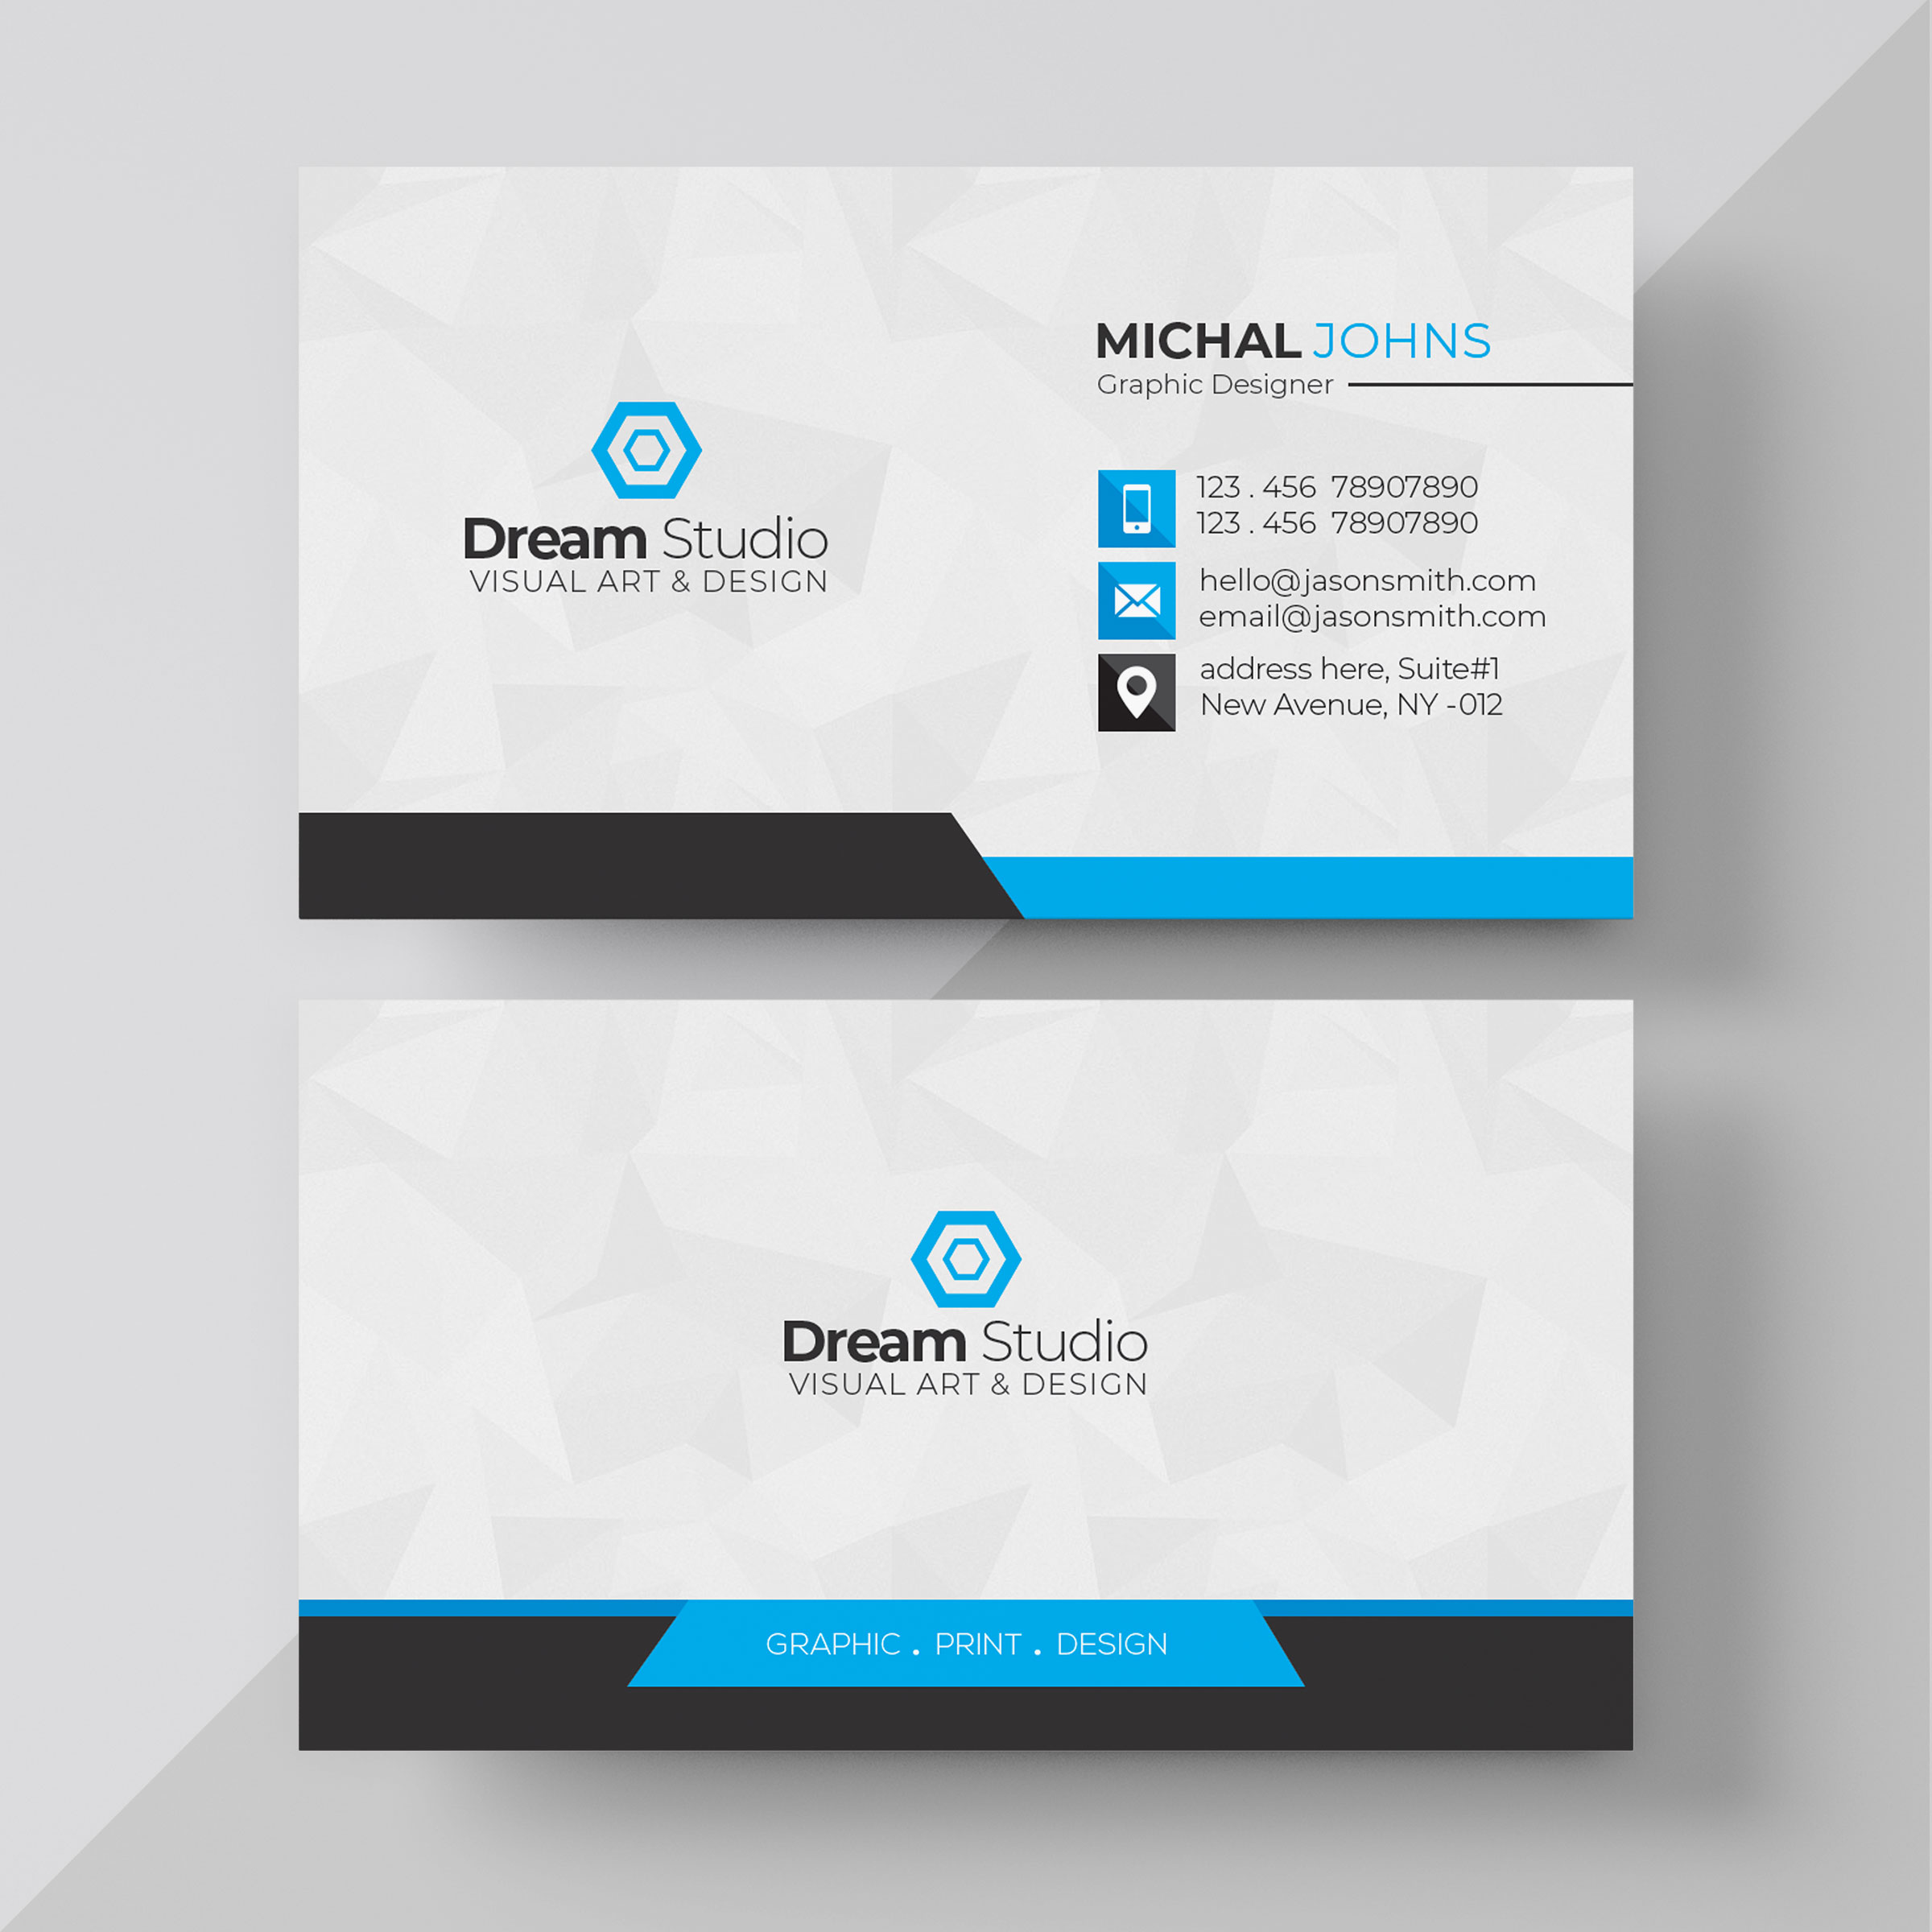 I will design professional and outstanding business card design